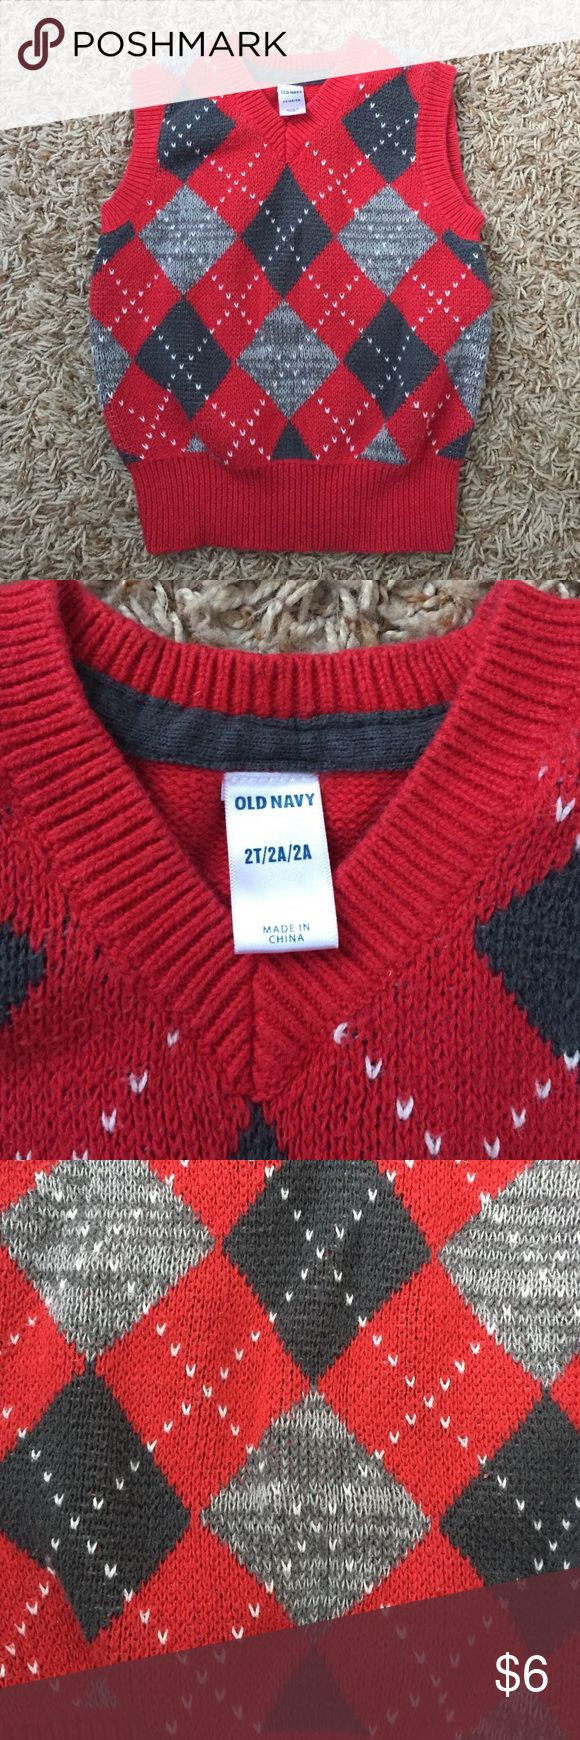 Old Navy red/gray argyle sweater vest, size 2T Great sweater vest for your little man for the holidays! Old Navy Shirts & Tops Sweaters